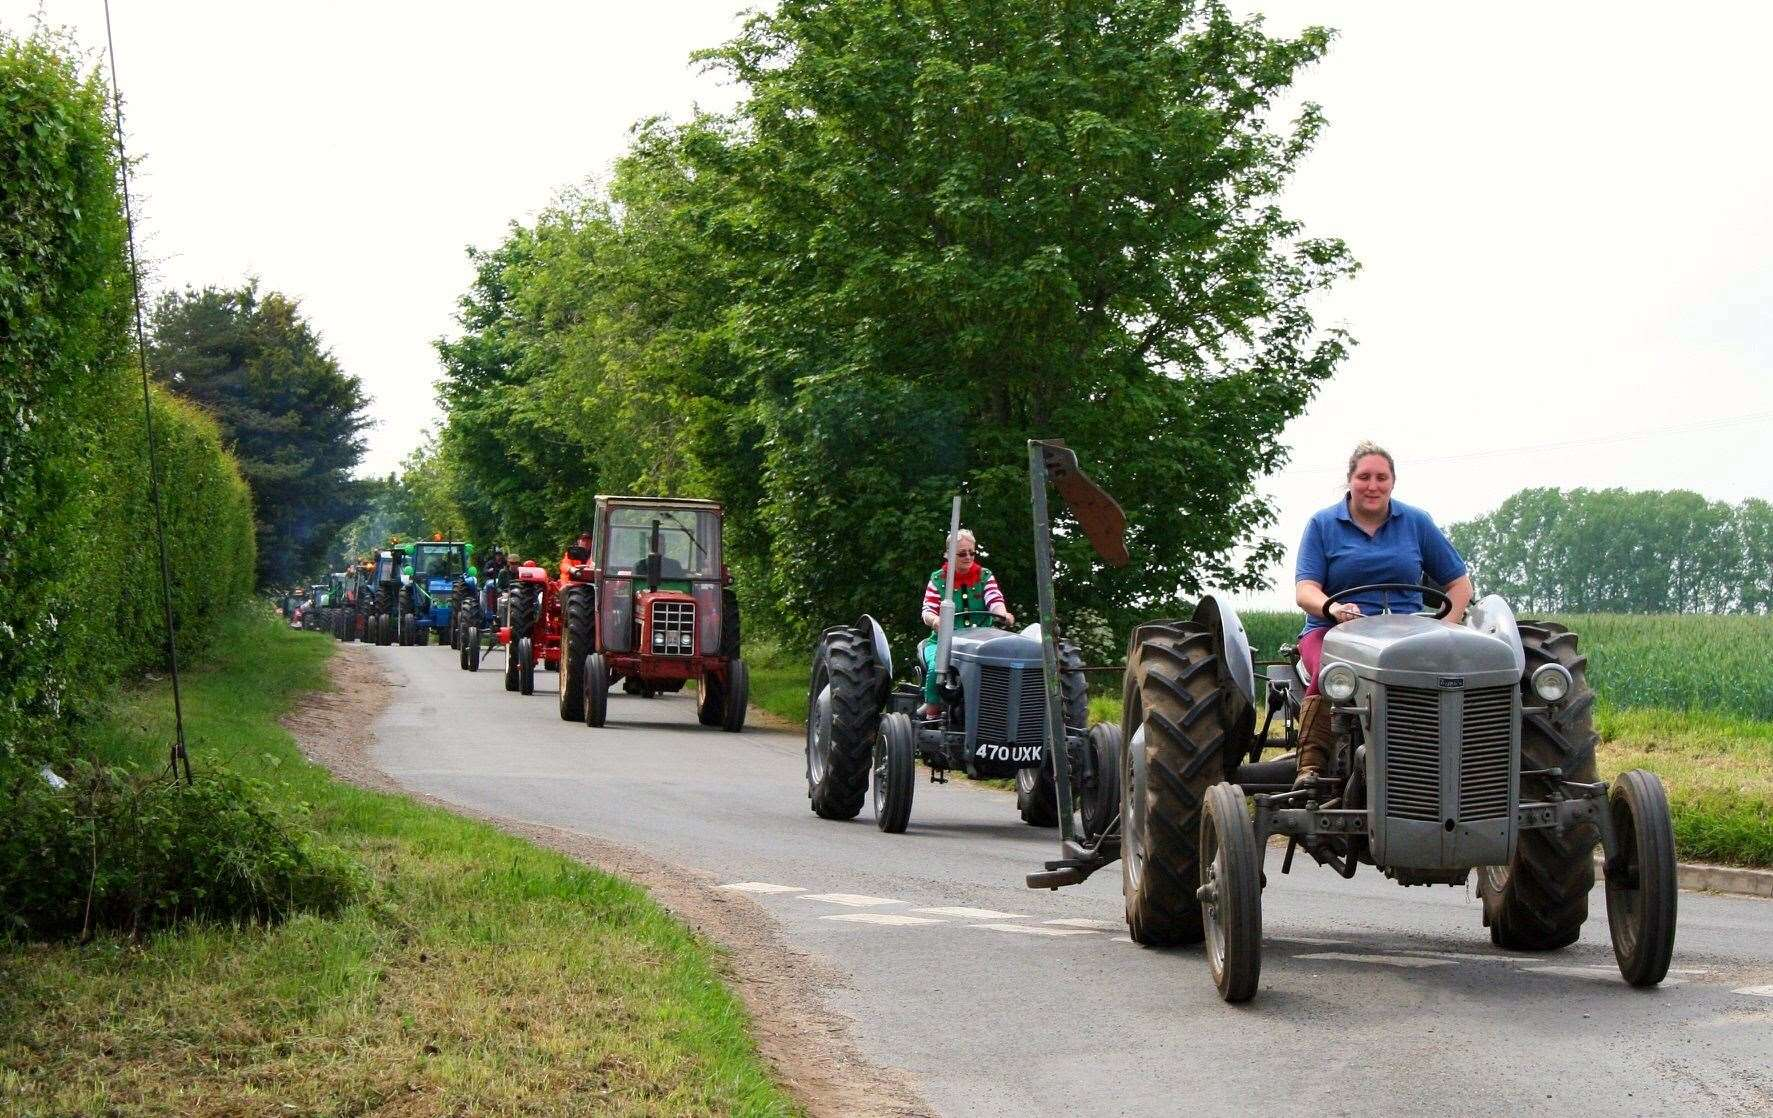 A rural convey on the Methwold Tractor Run (11453105)